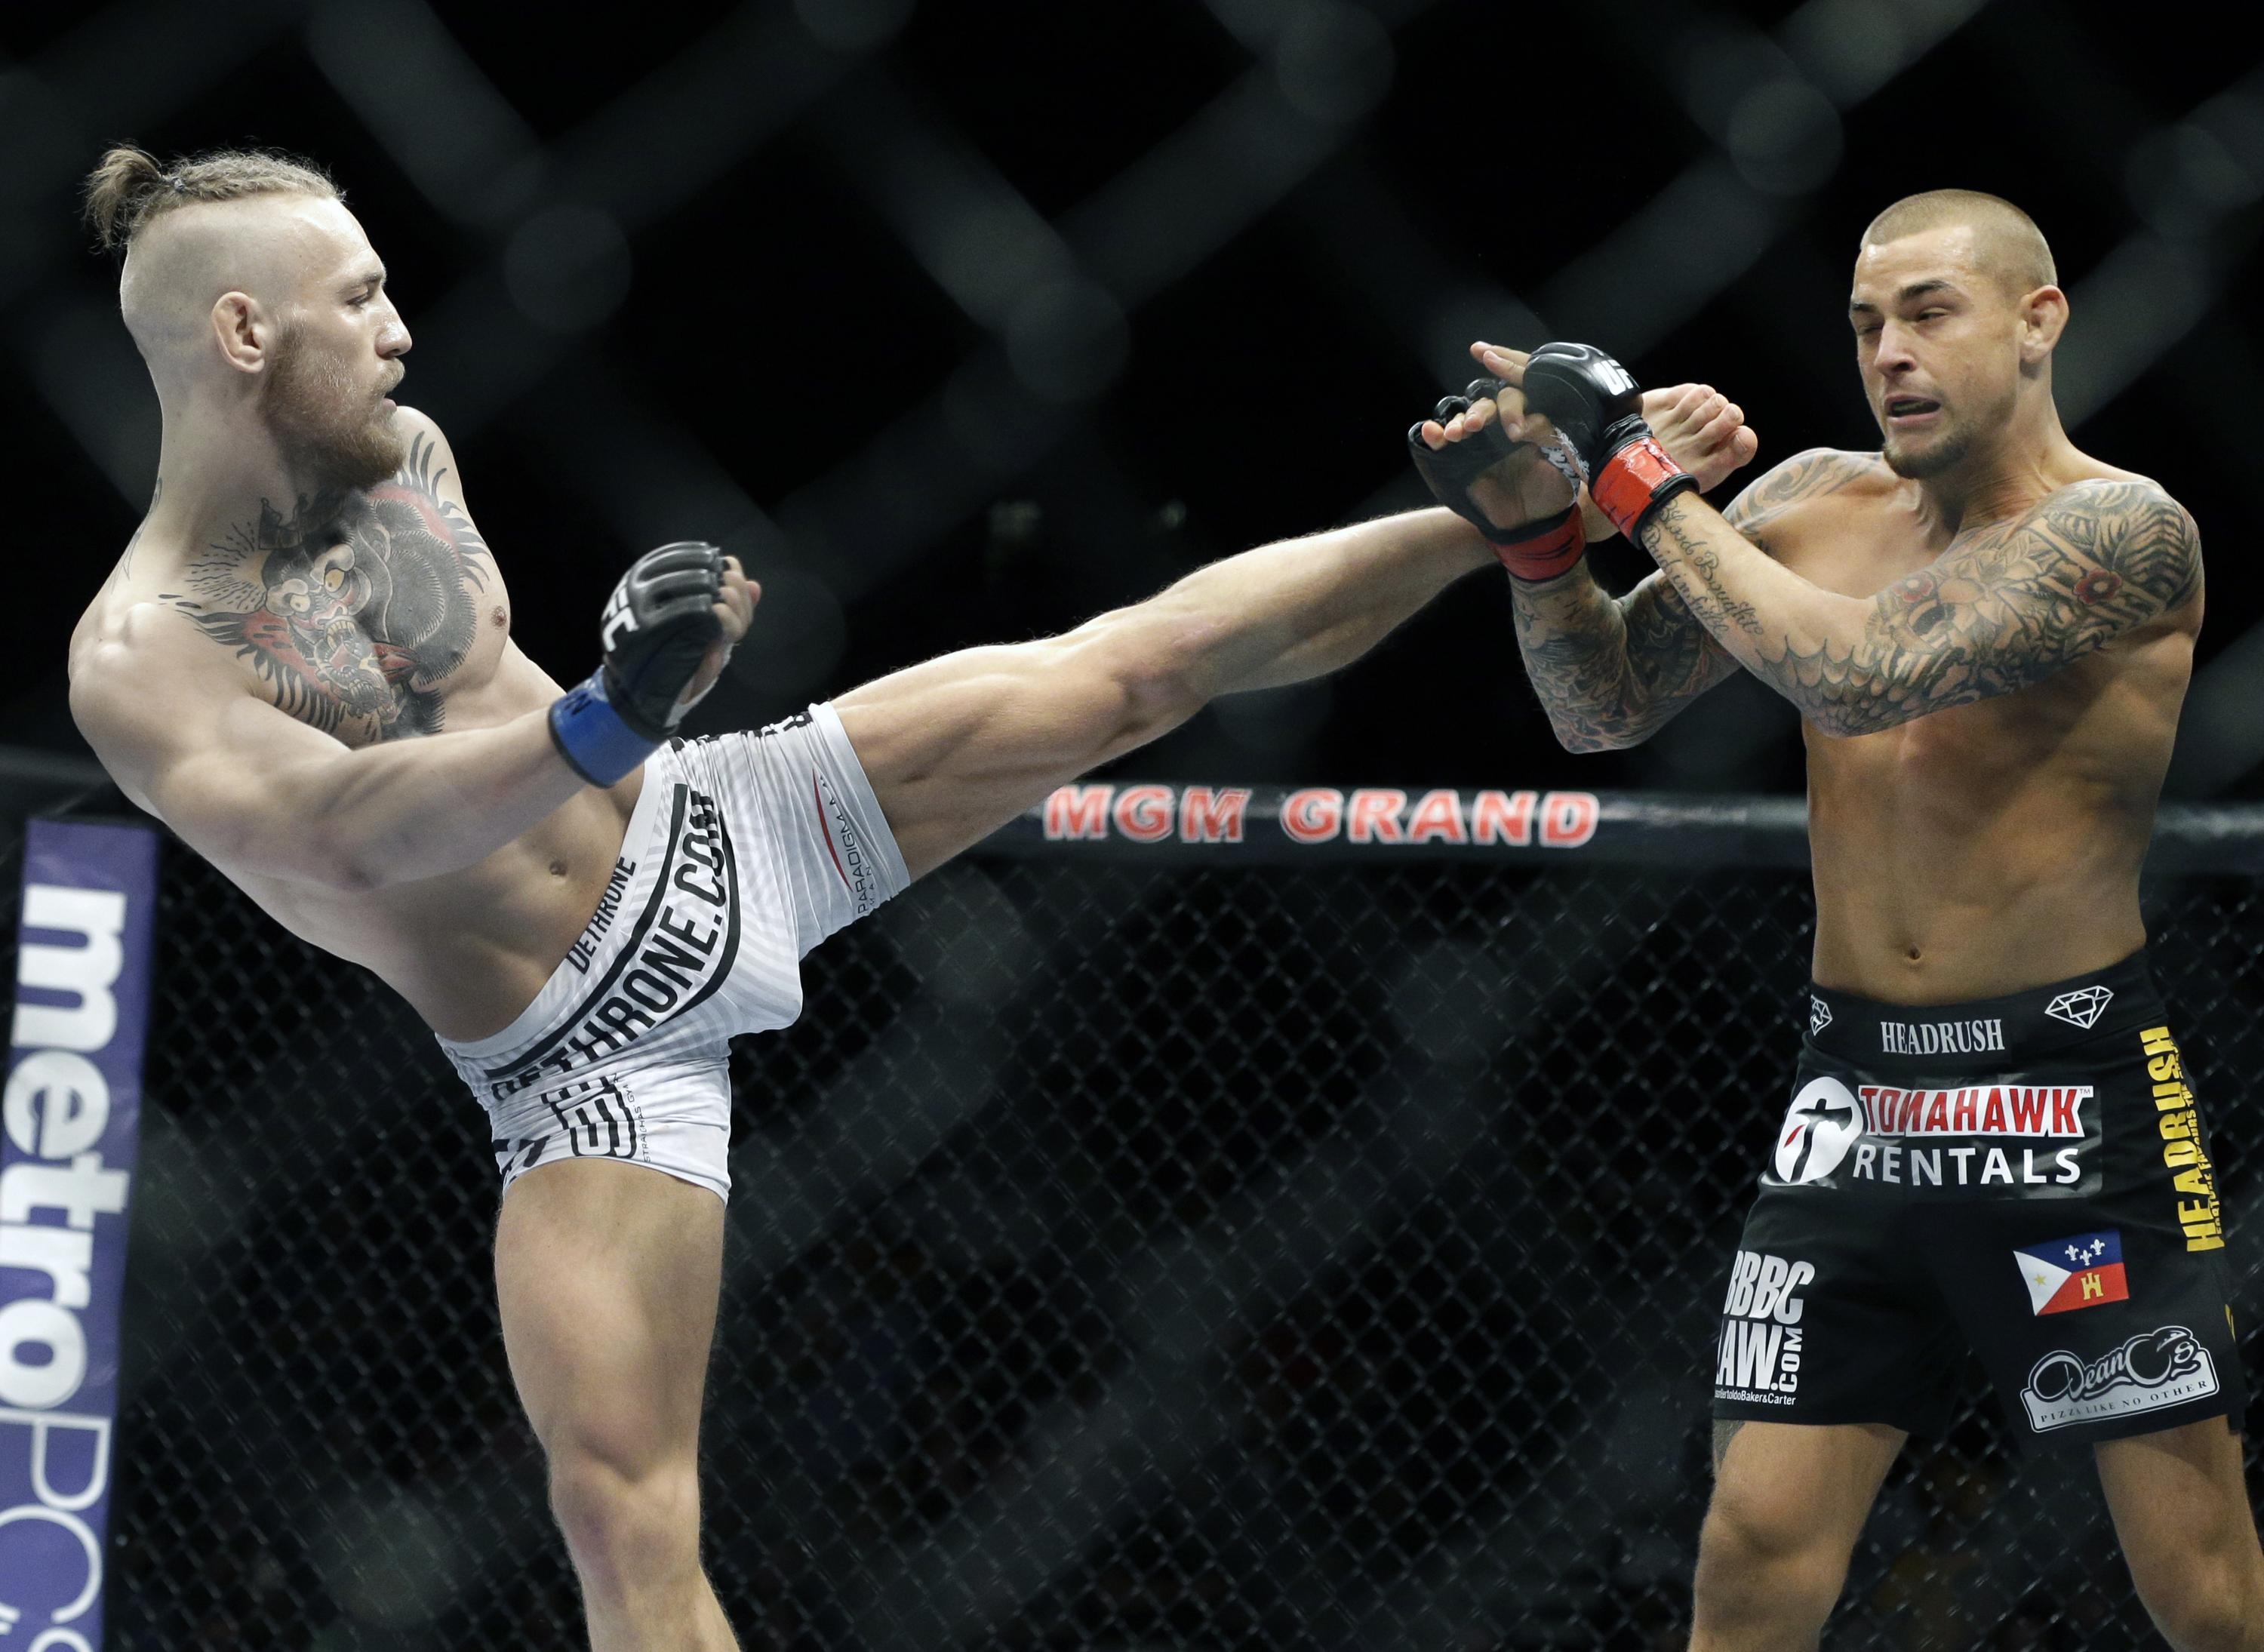 McGregor scored a KO win against Poirier at featherweight in 2014